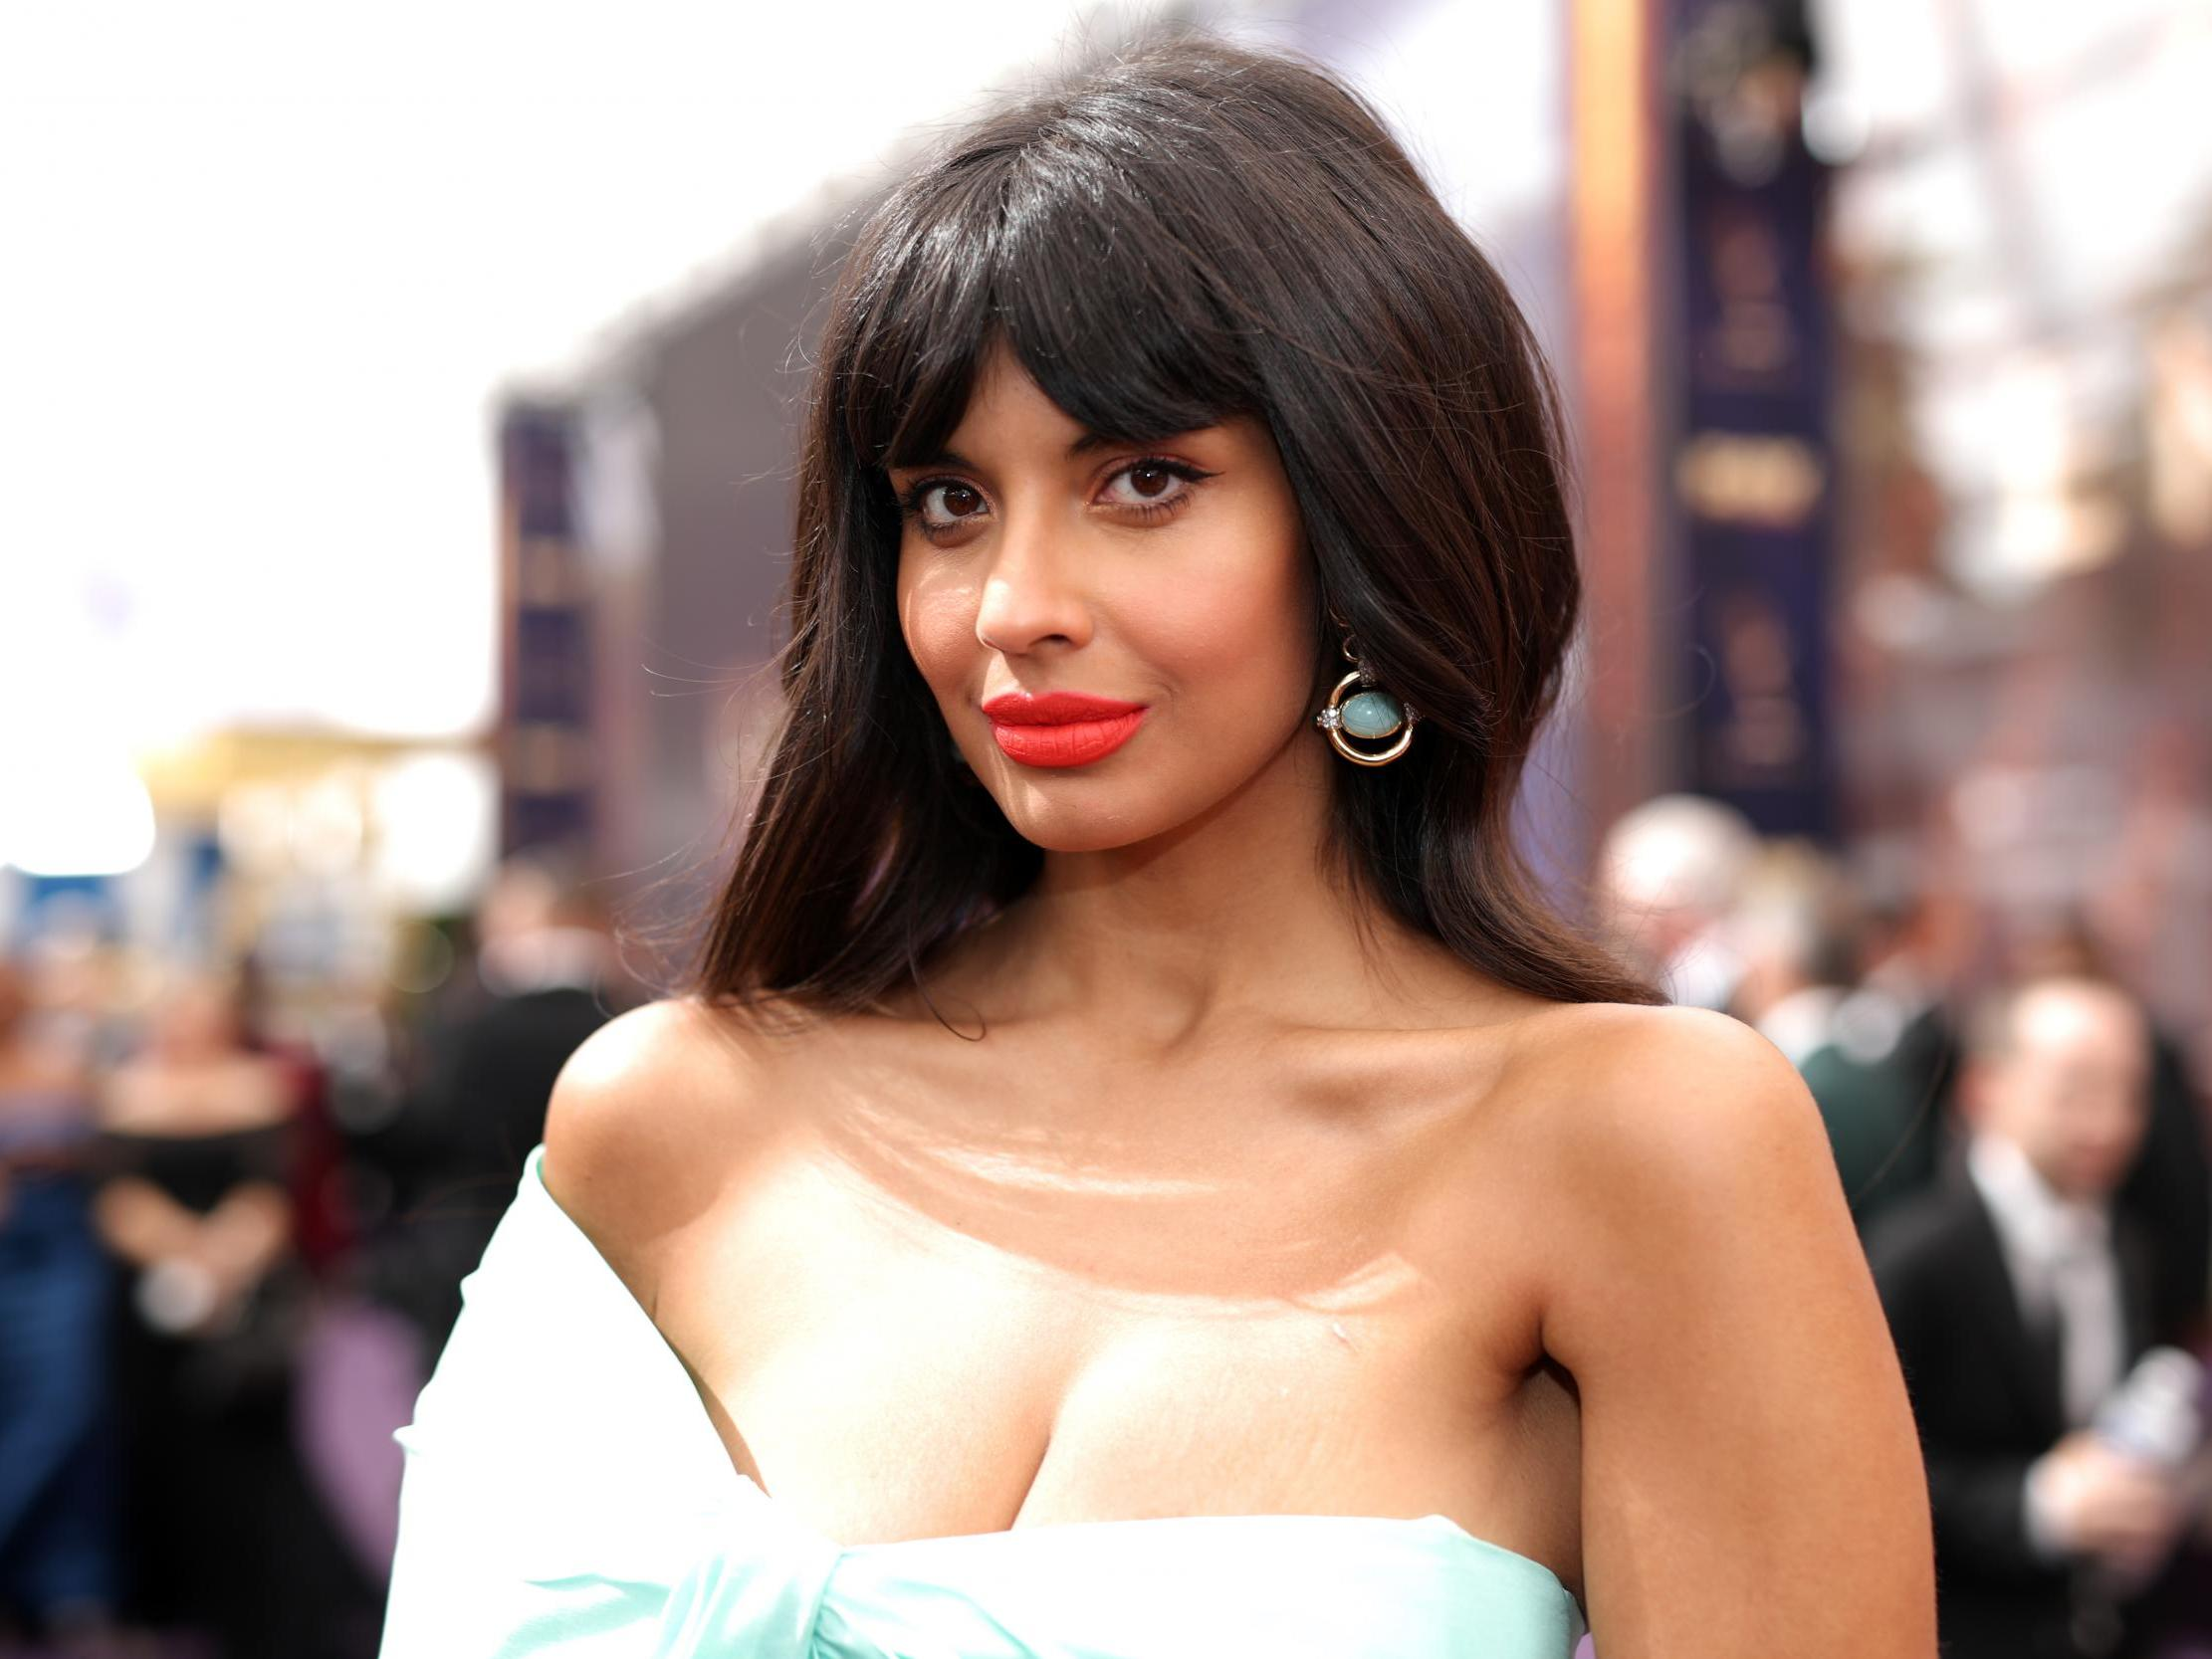 Pro-choice abortion metaphors like Jameela Jamil's can do more harm for the cause than you realise